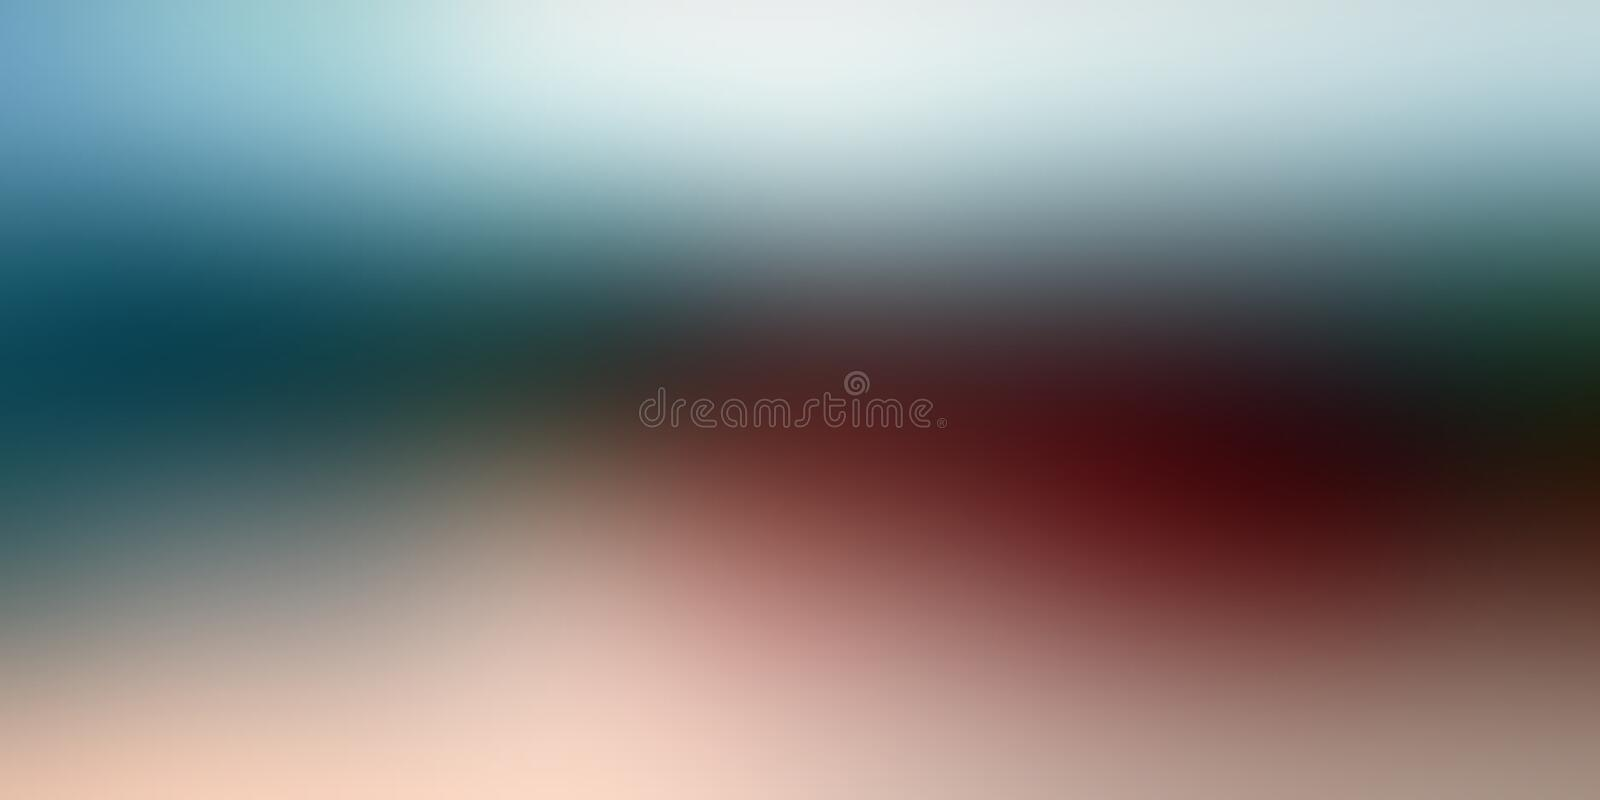 Colorful blur abstract background vector design, colorful blurred shaded background, vivid color vector illustration. stock photos